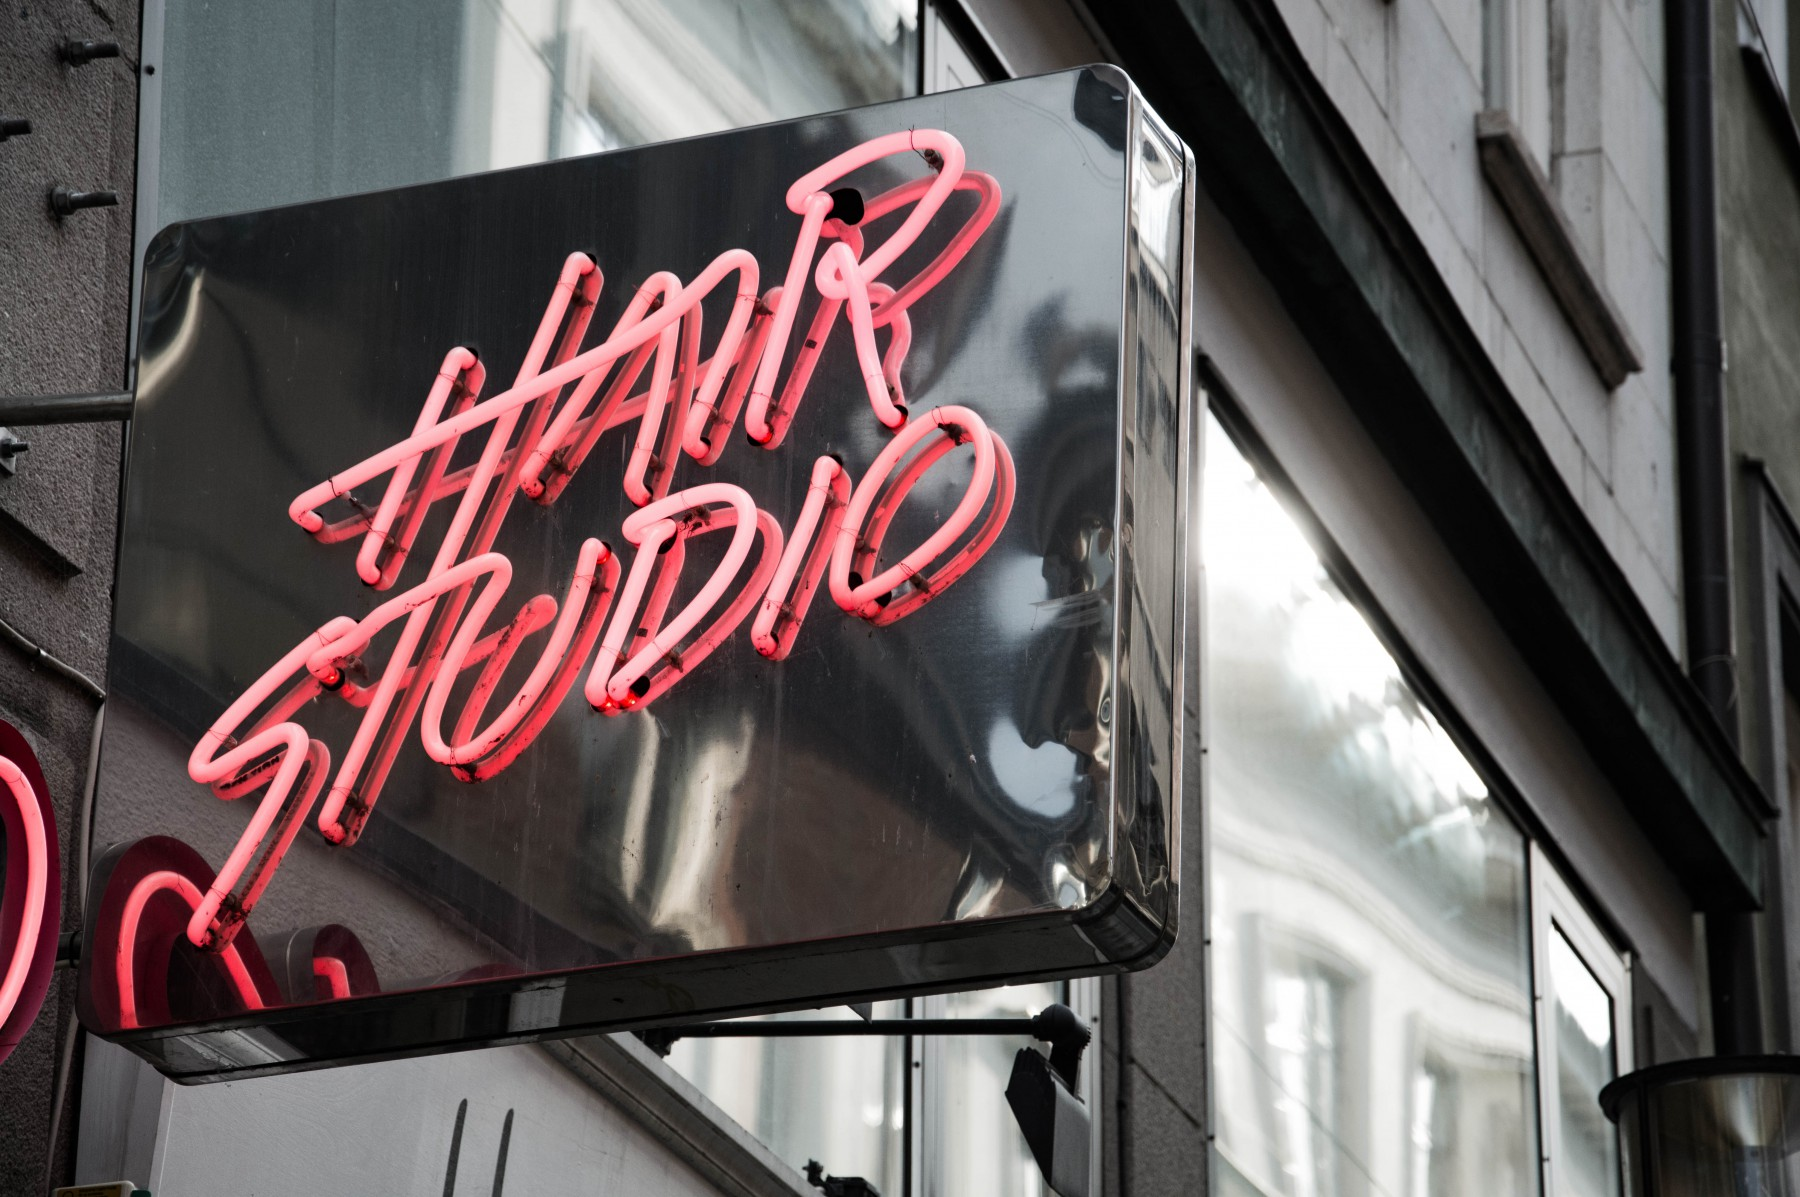 hair studio neon sign